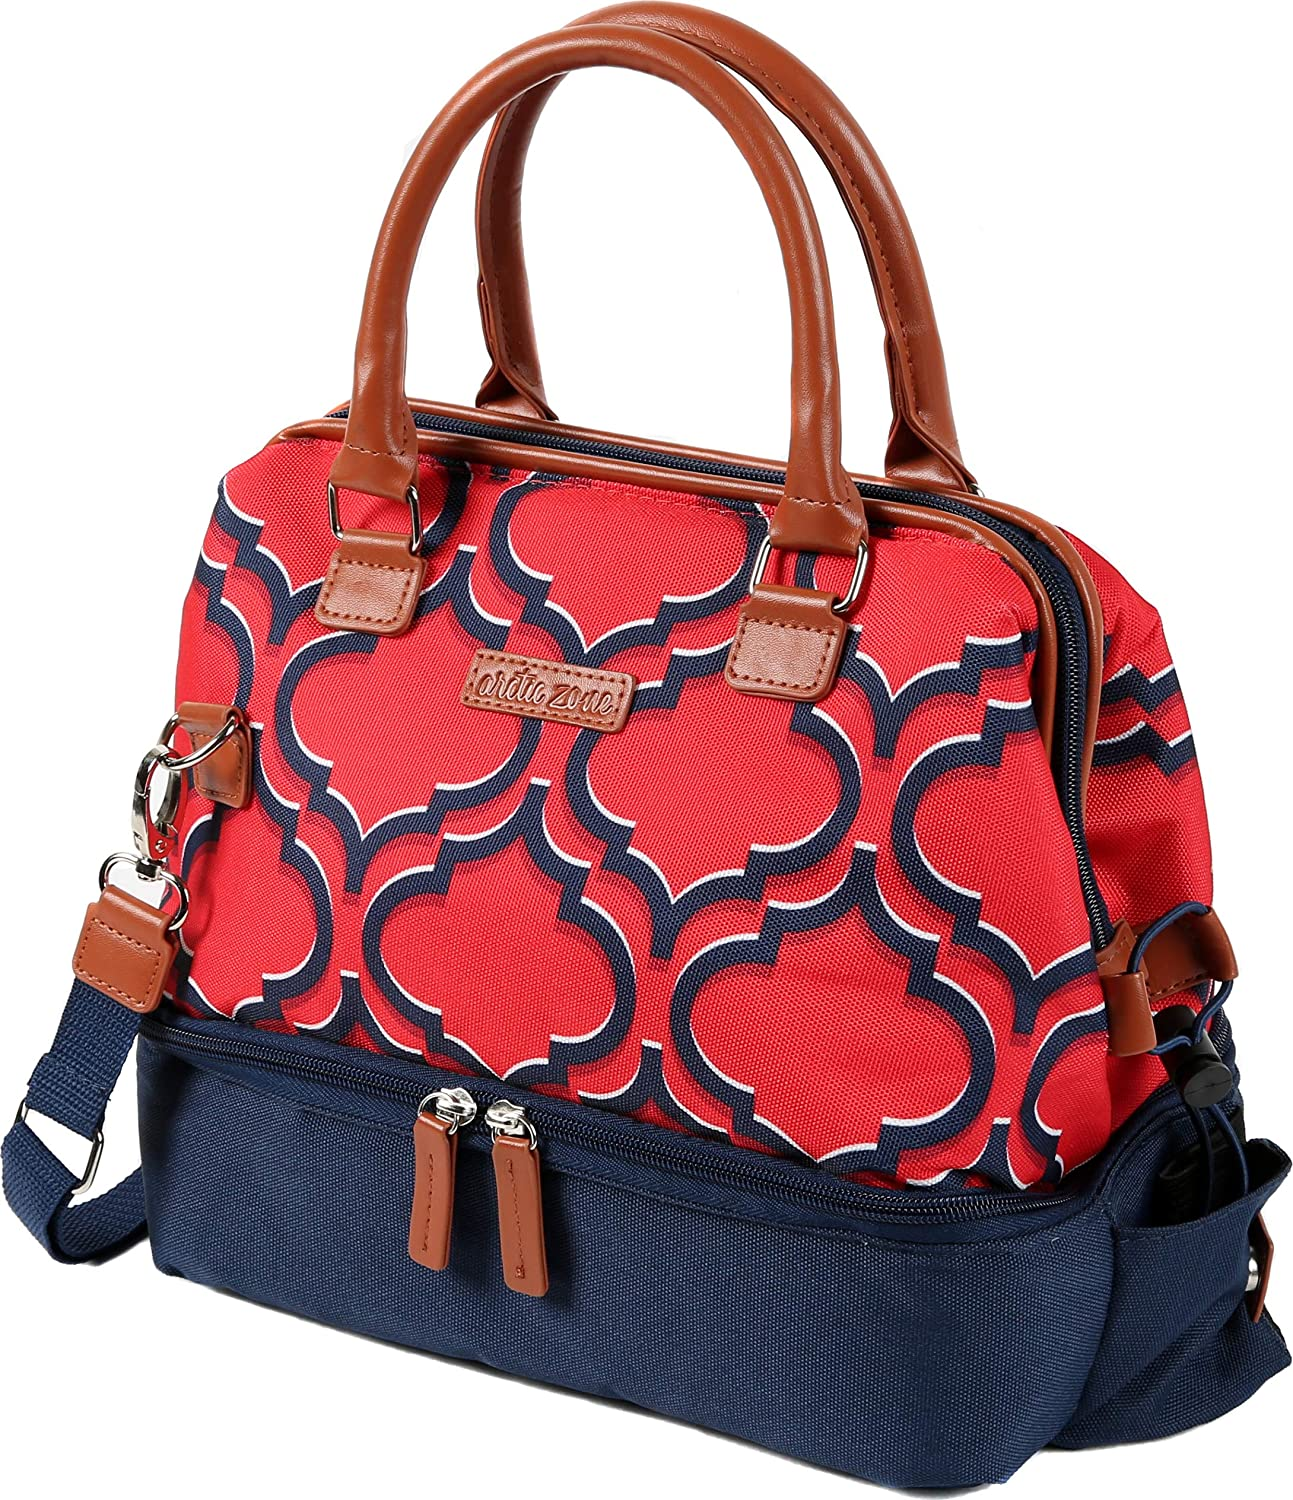 Arctic Zone 1528AMPR0428 Thermal Insulated Lunch Tote, 2 Compartments - Batik, Red